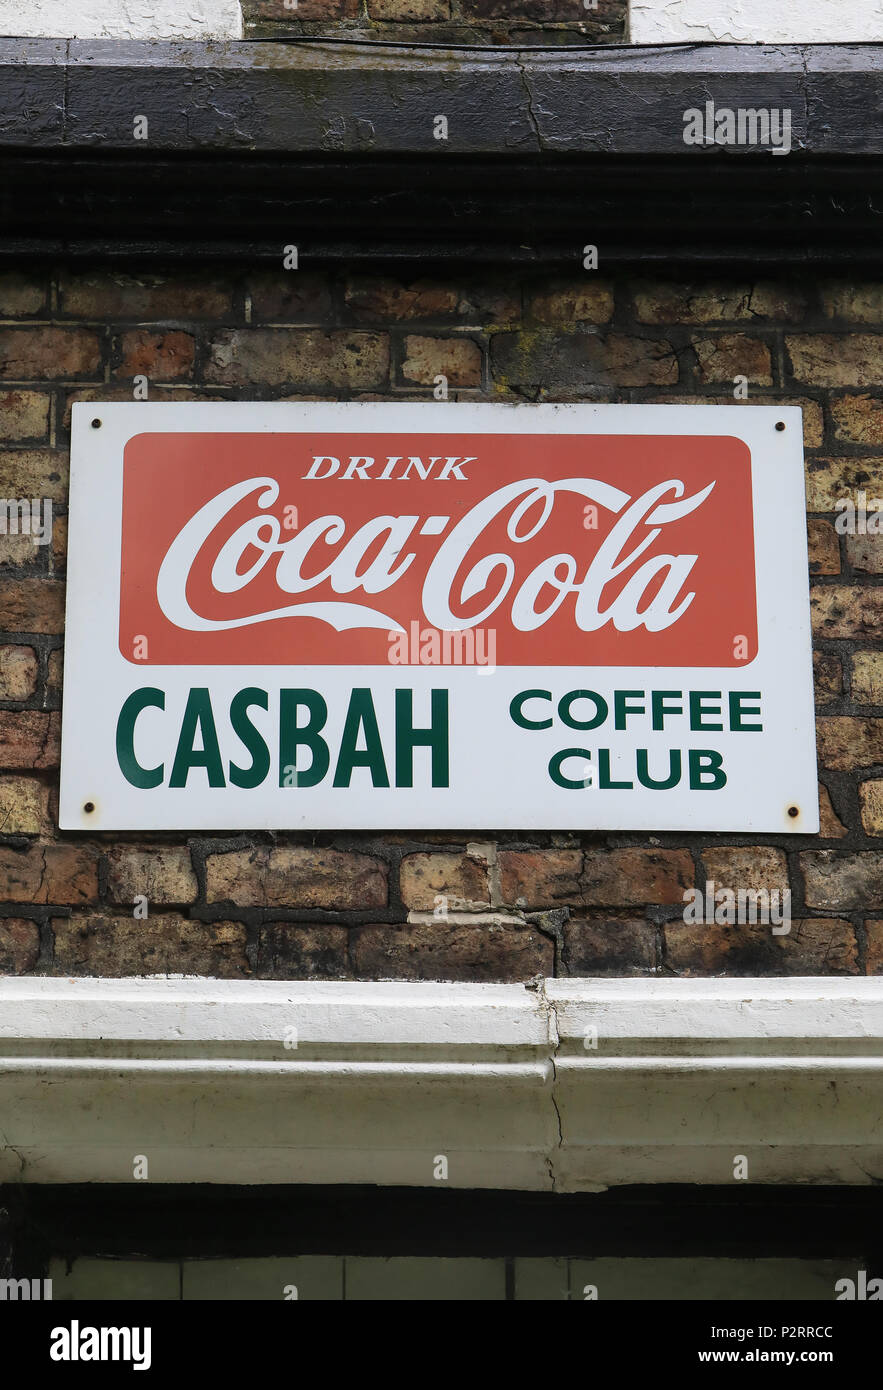 Sign for the Casbah Coffee Club, a rock and roll venue in the converted cellar of a heritage listed house in Liverpool, where the Beatles first played - Stock Image